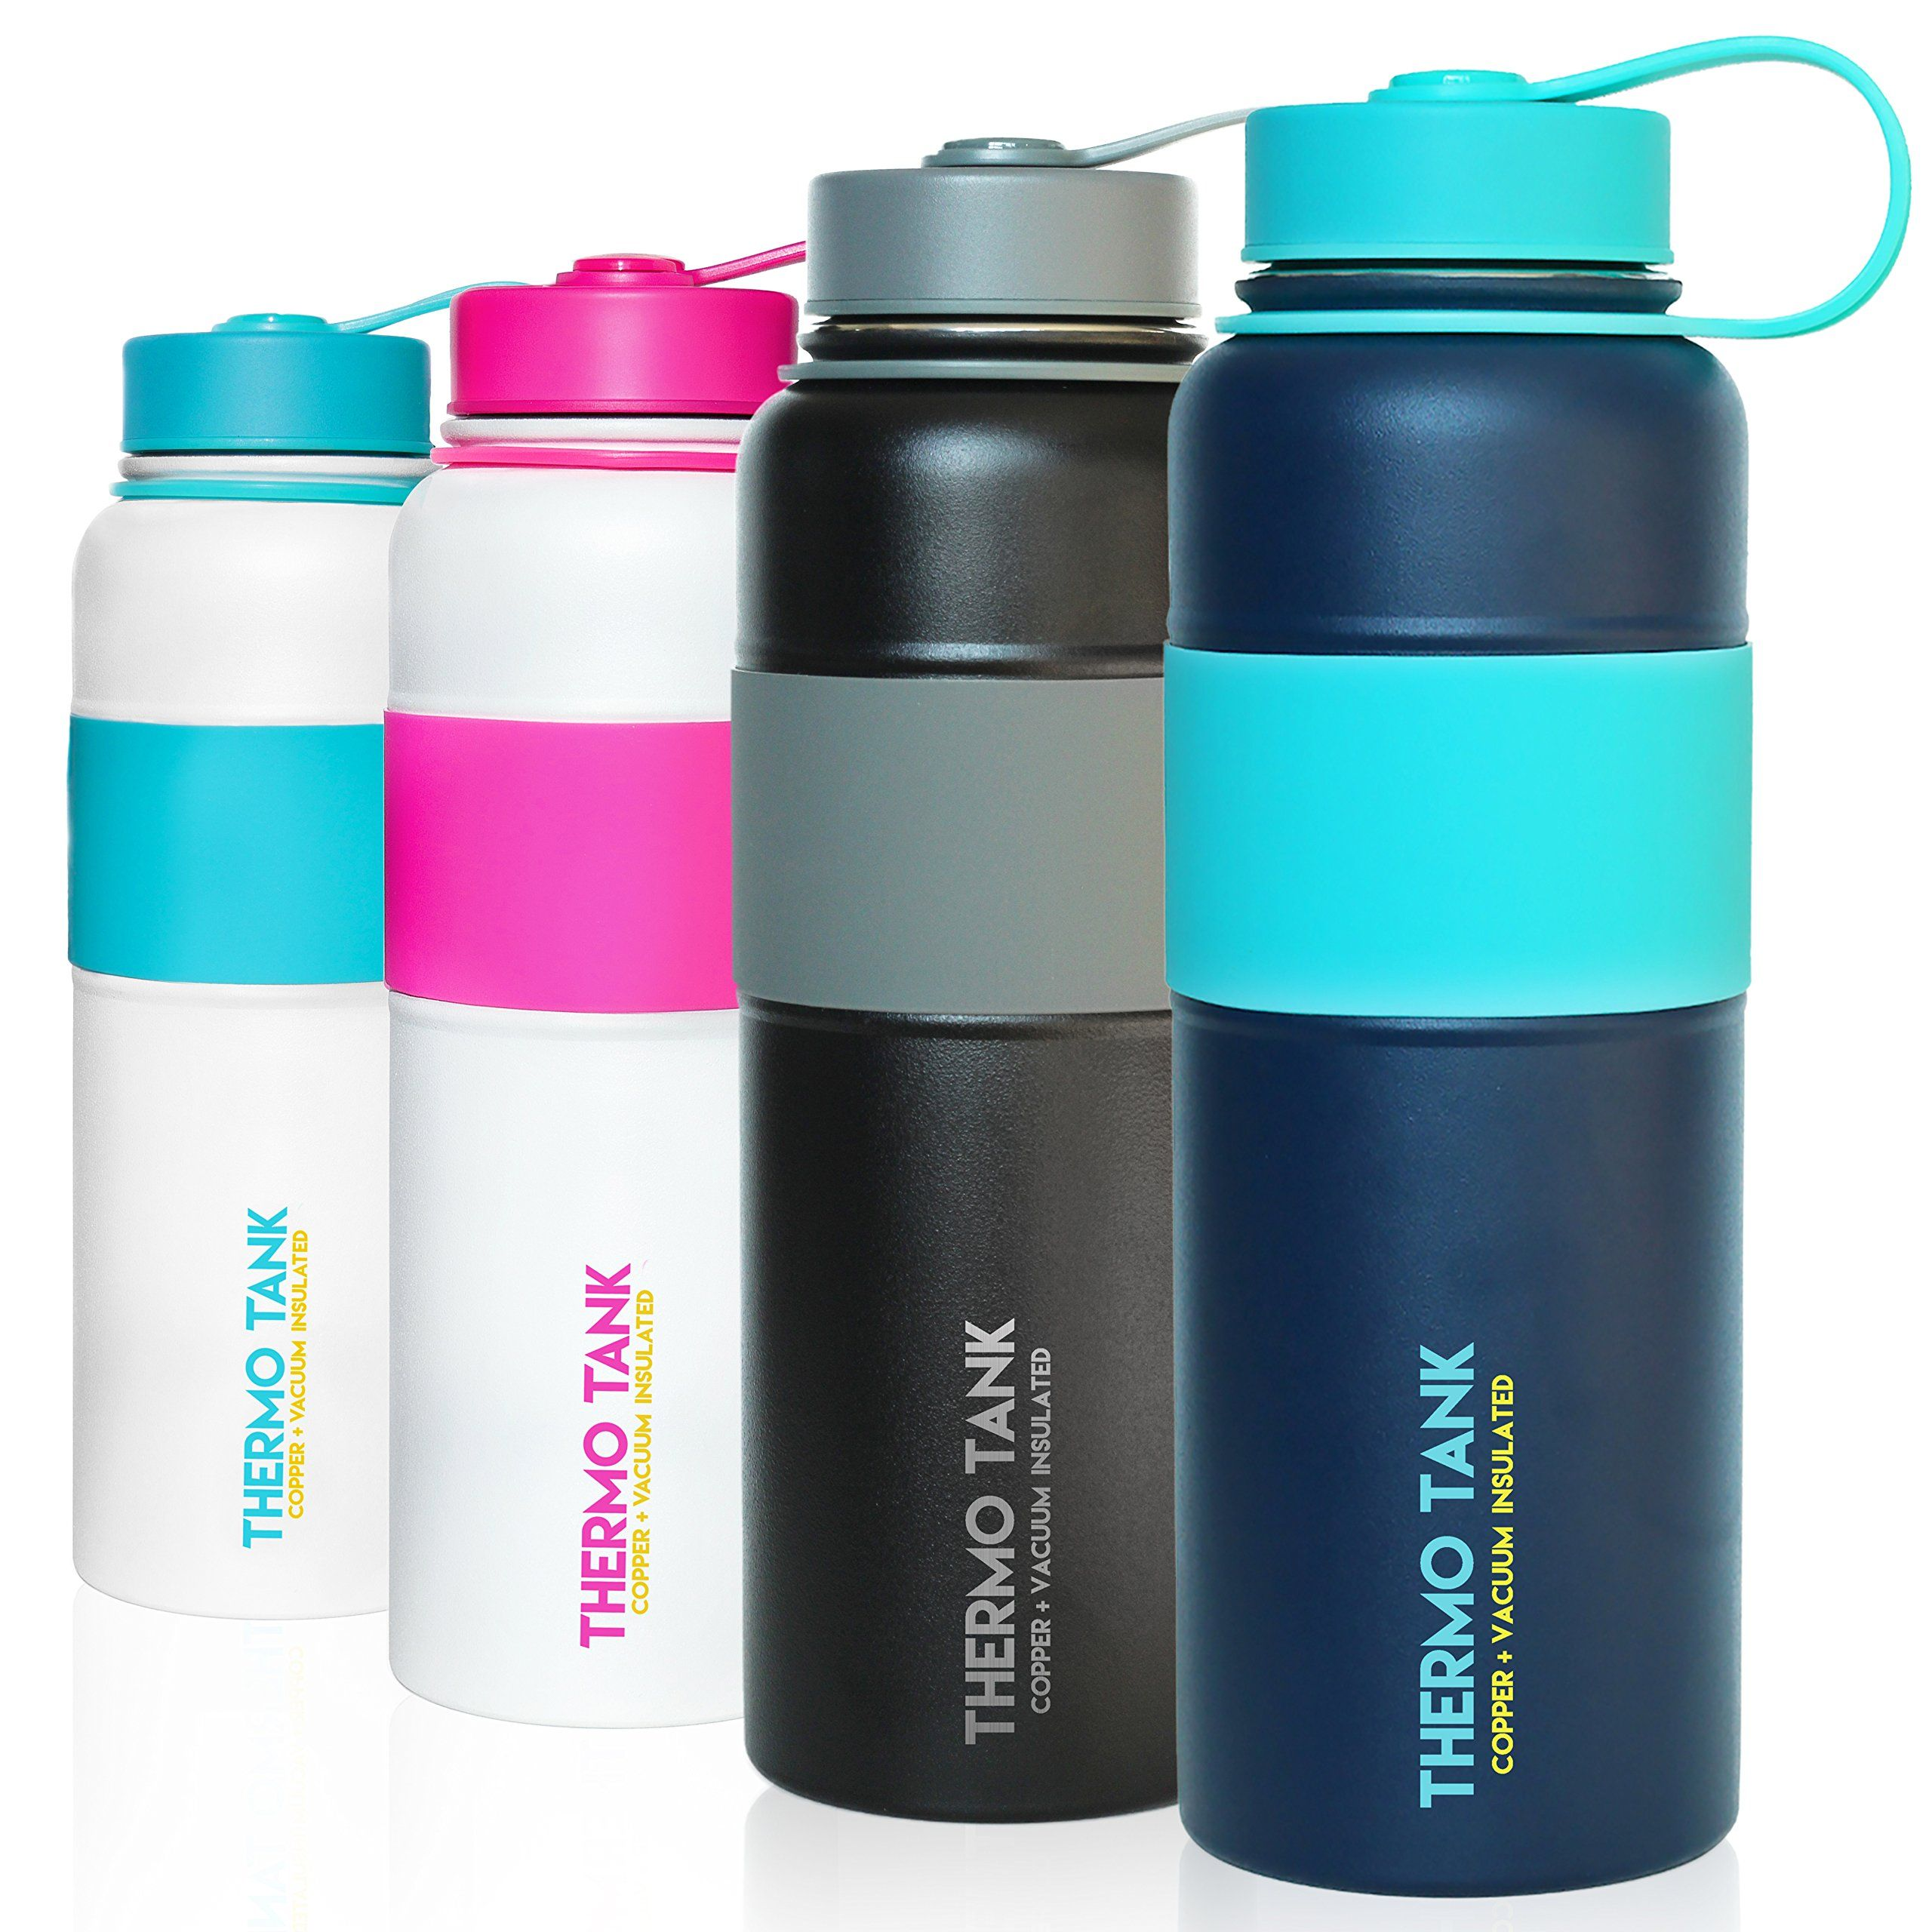 Thermo Tank Insulated Stainless Steel Water Bottle Ice Cold 36 Hours Vacuum Copper Technolog With Images Insulated Stainless Steel Water Bottle Stainless Bottle Bottle